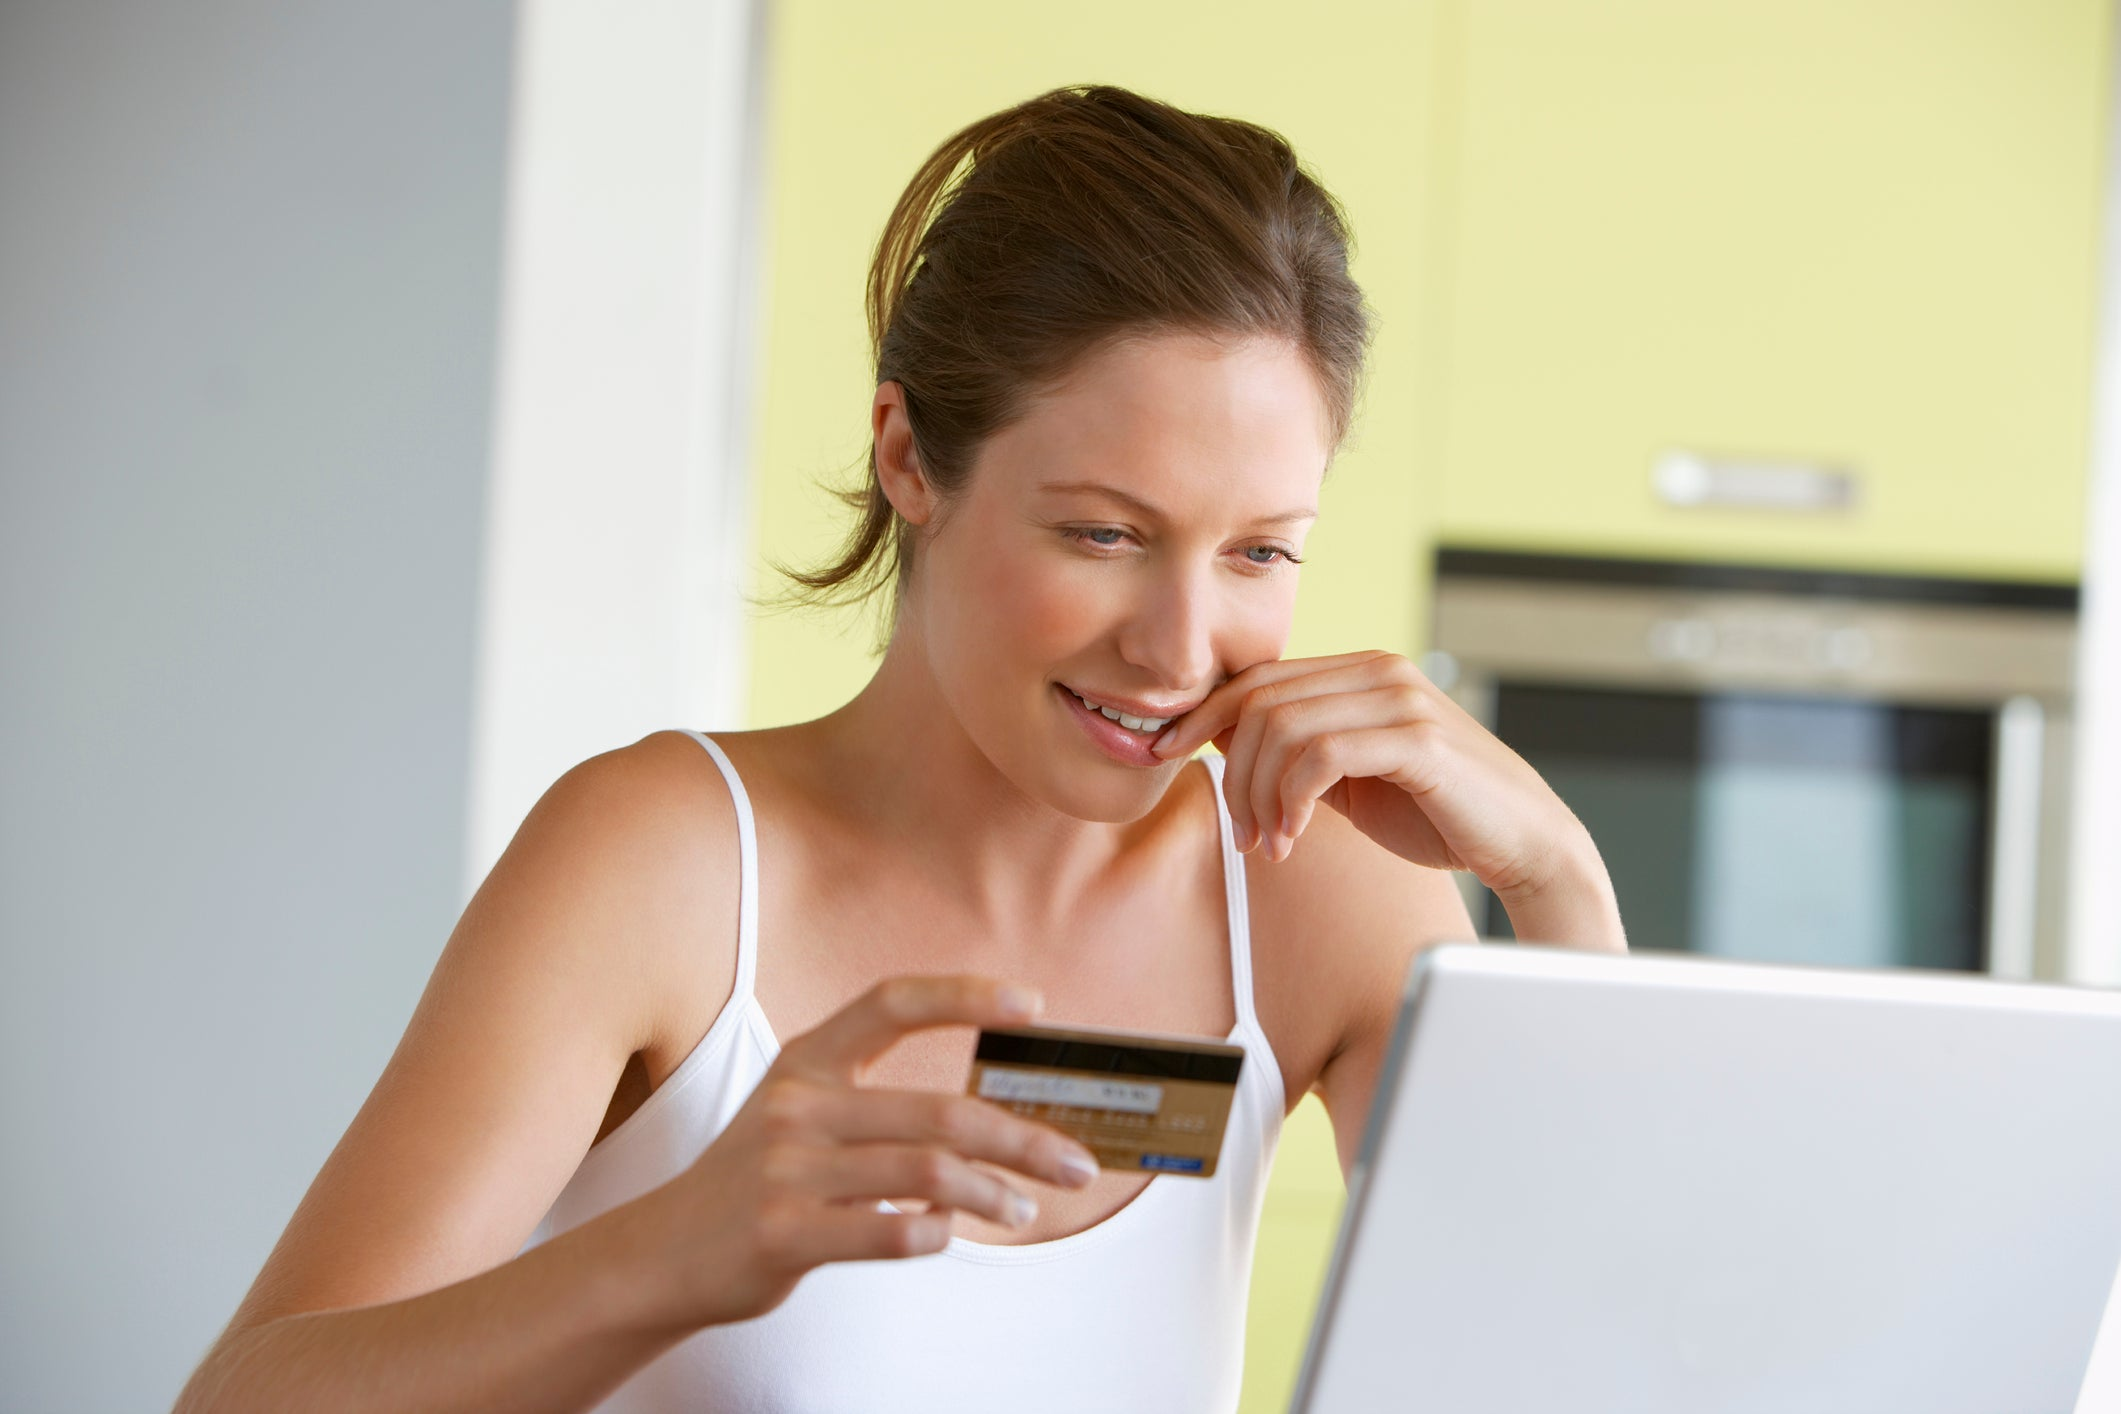 A smiling woman holding a credit card and preparing to make an online purchase on her laptop.